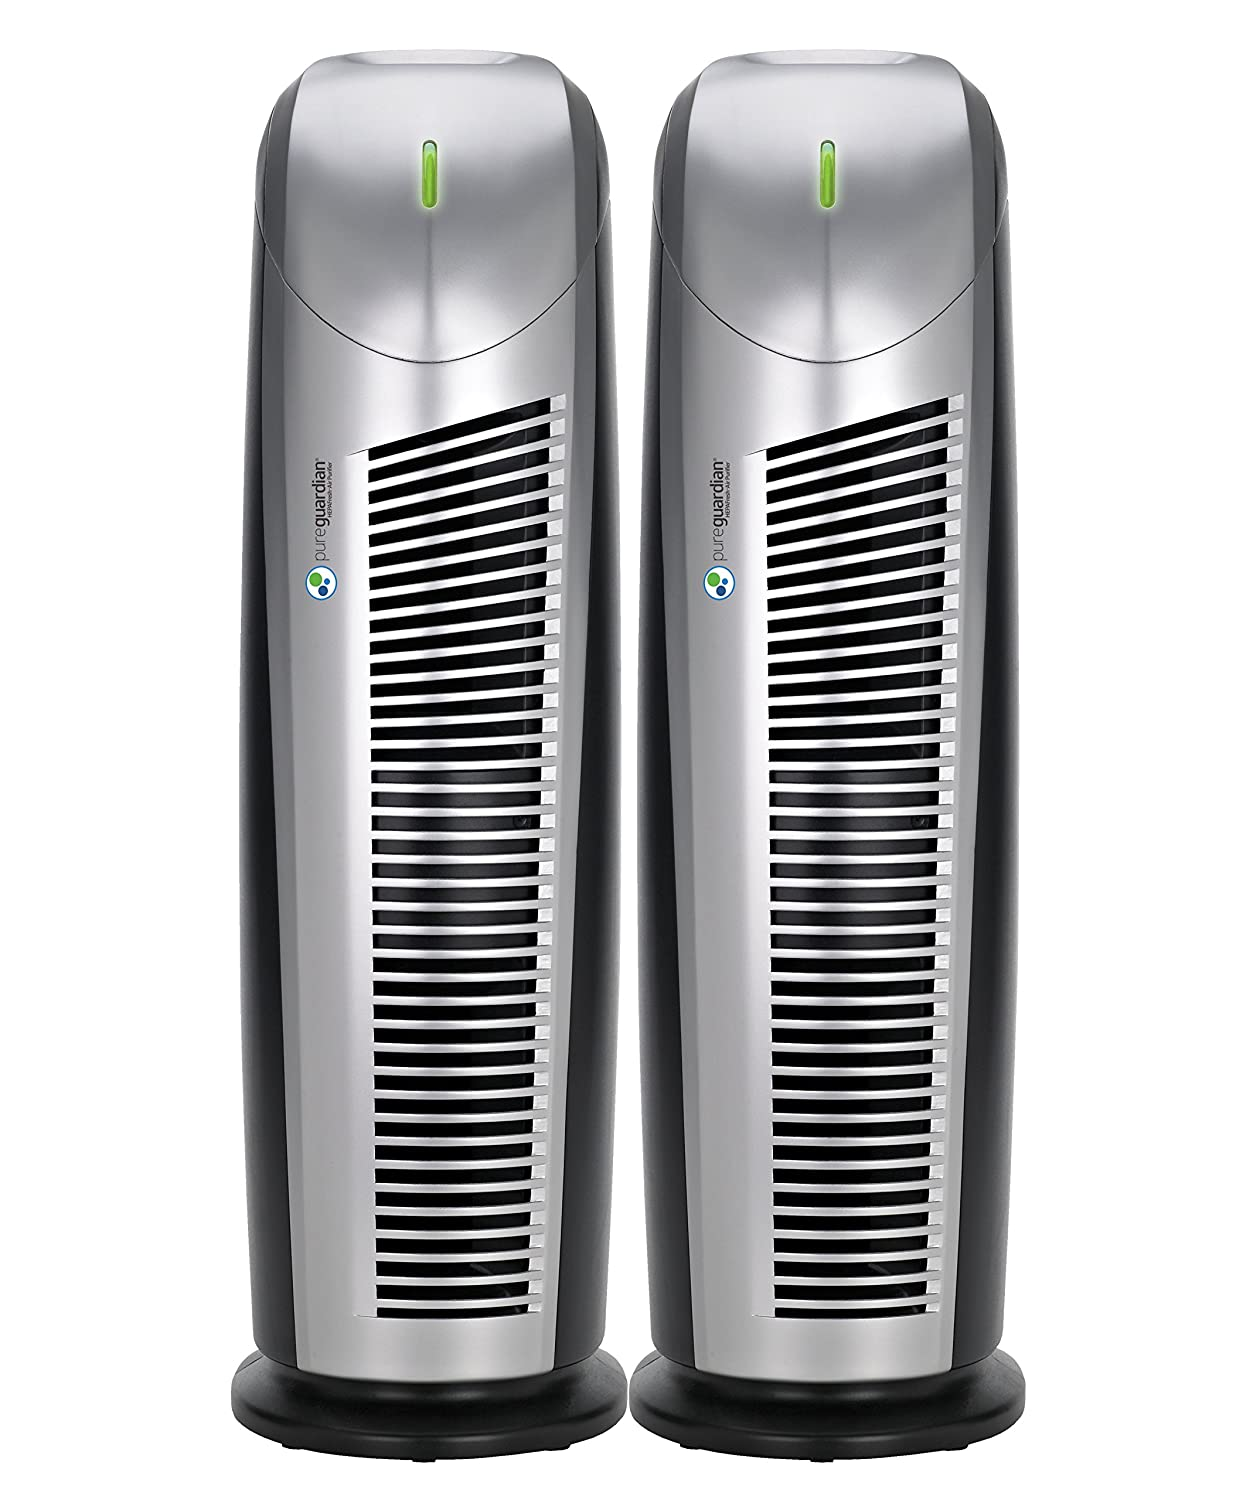 PureGuardian AP22002PK Air Purifiers with HEPAFresh Filter, Captures Allergens, Mold Spores, Dust, Pet Dander, Reduces Odors, Pure Guardian Air Purifier 2-Pack